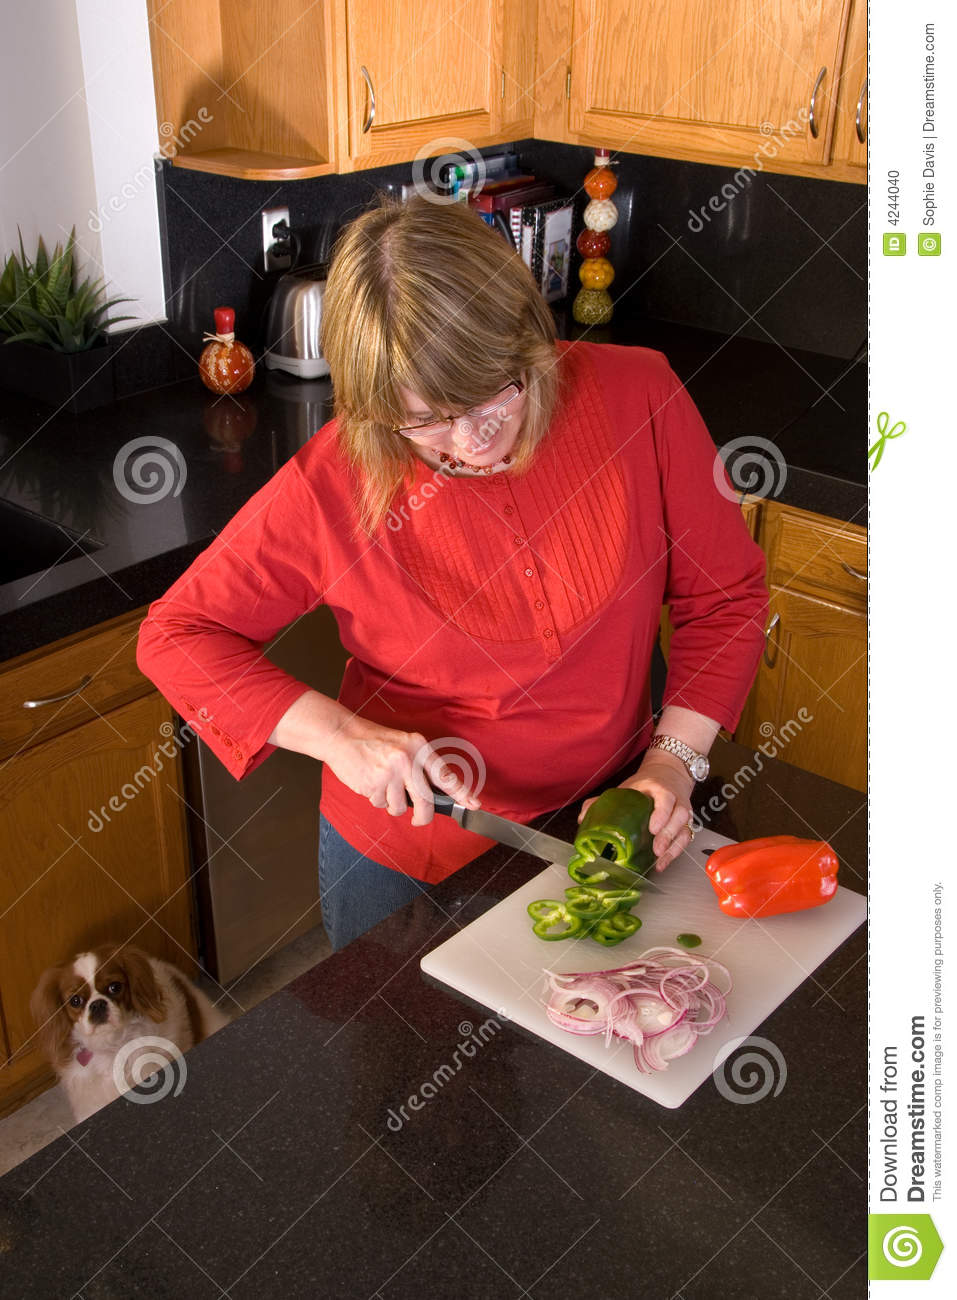 Woman Cutting Vegetables Stock Photo Image 4244040